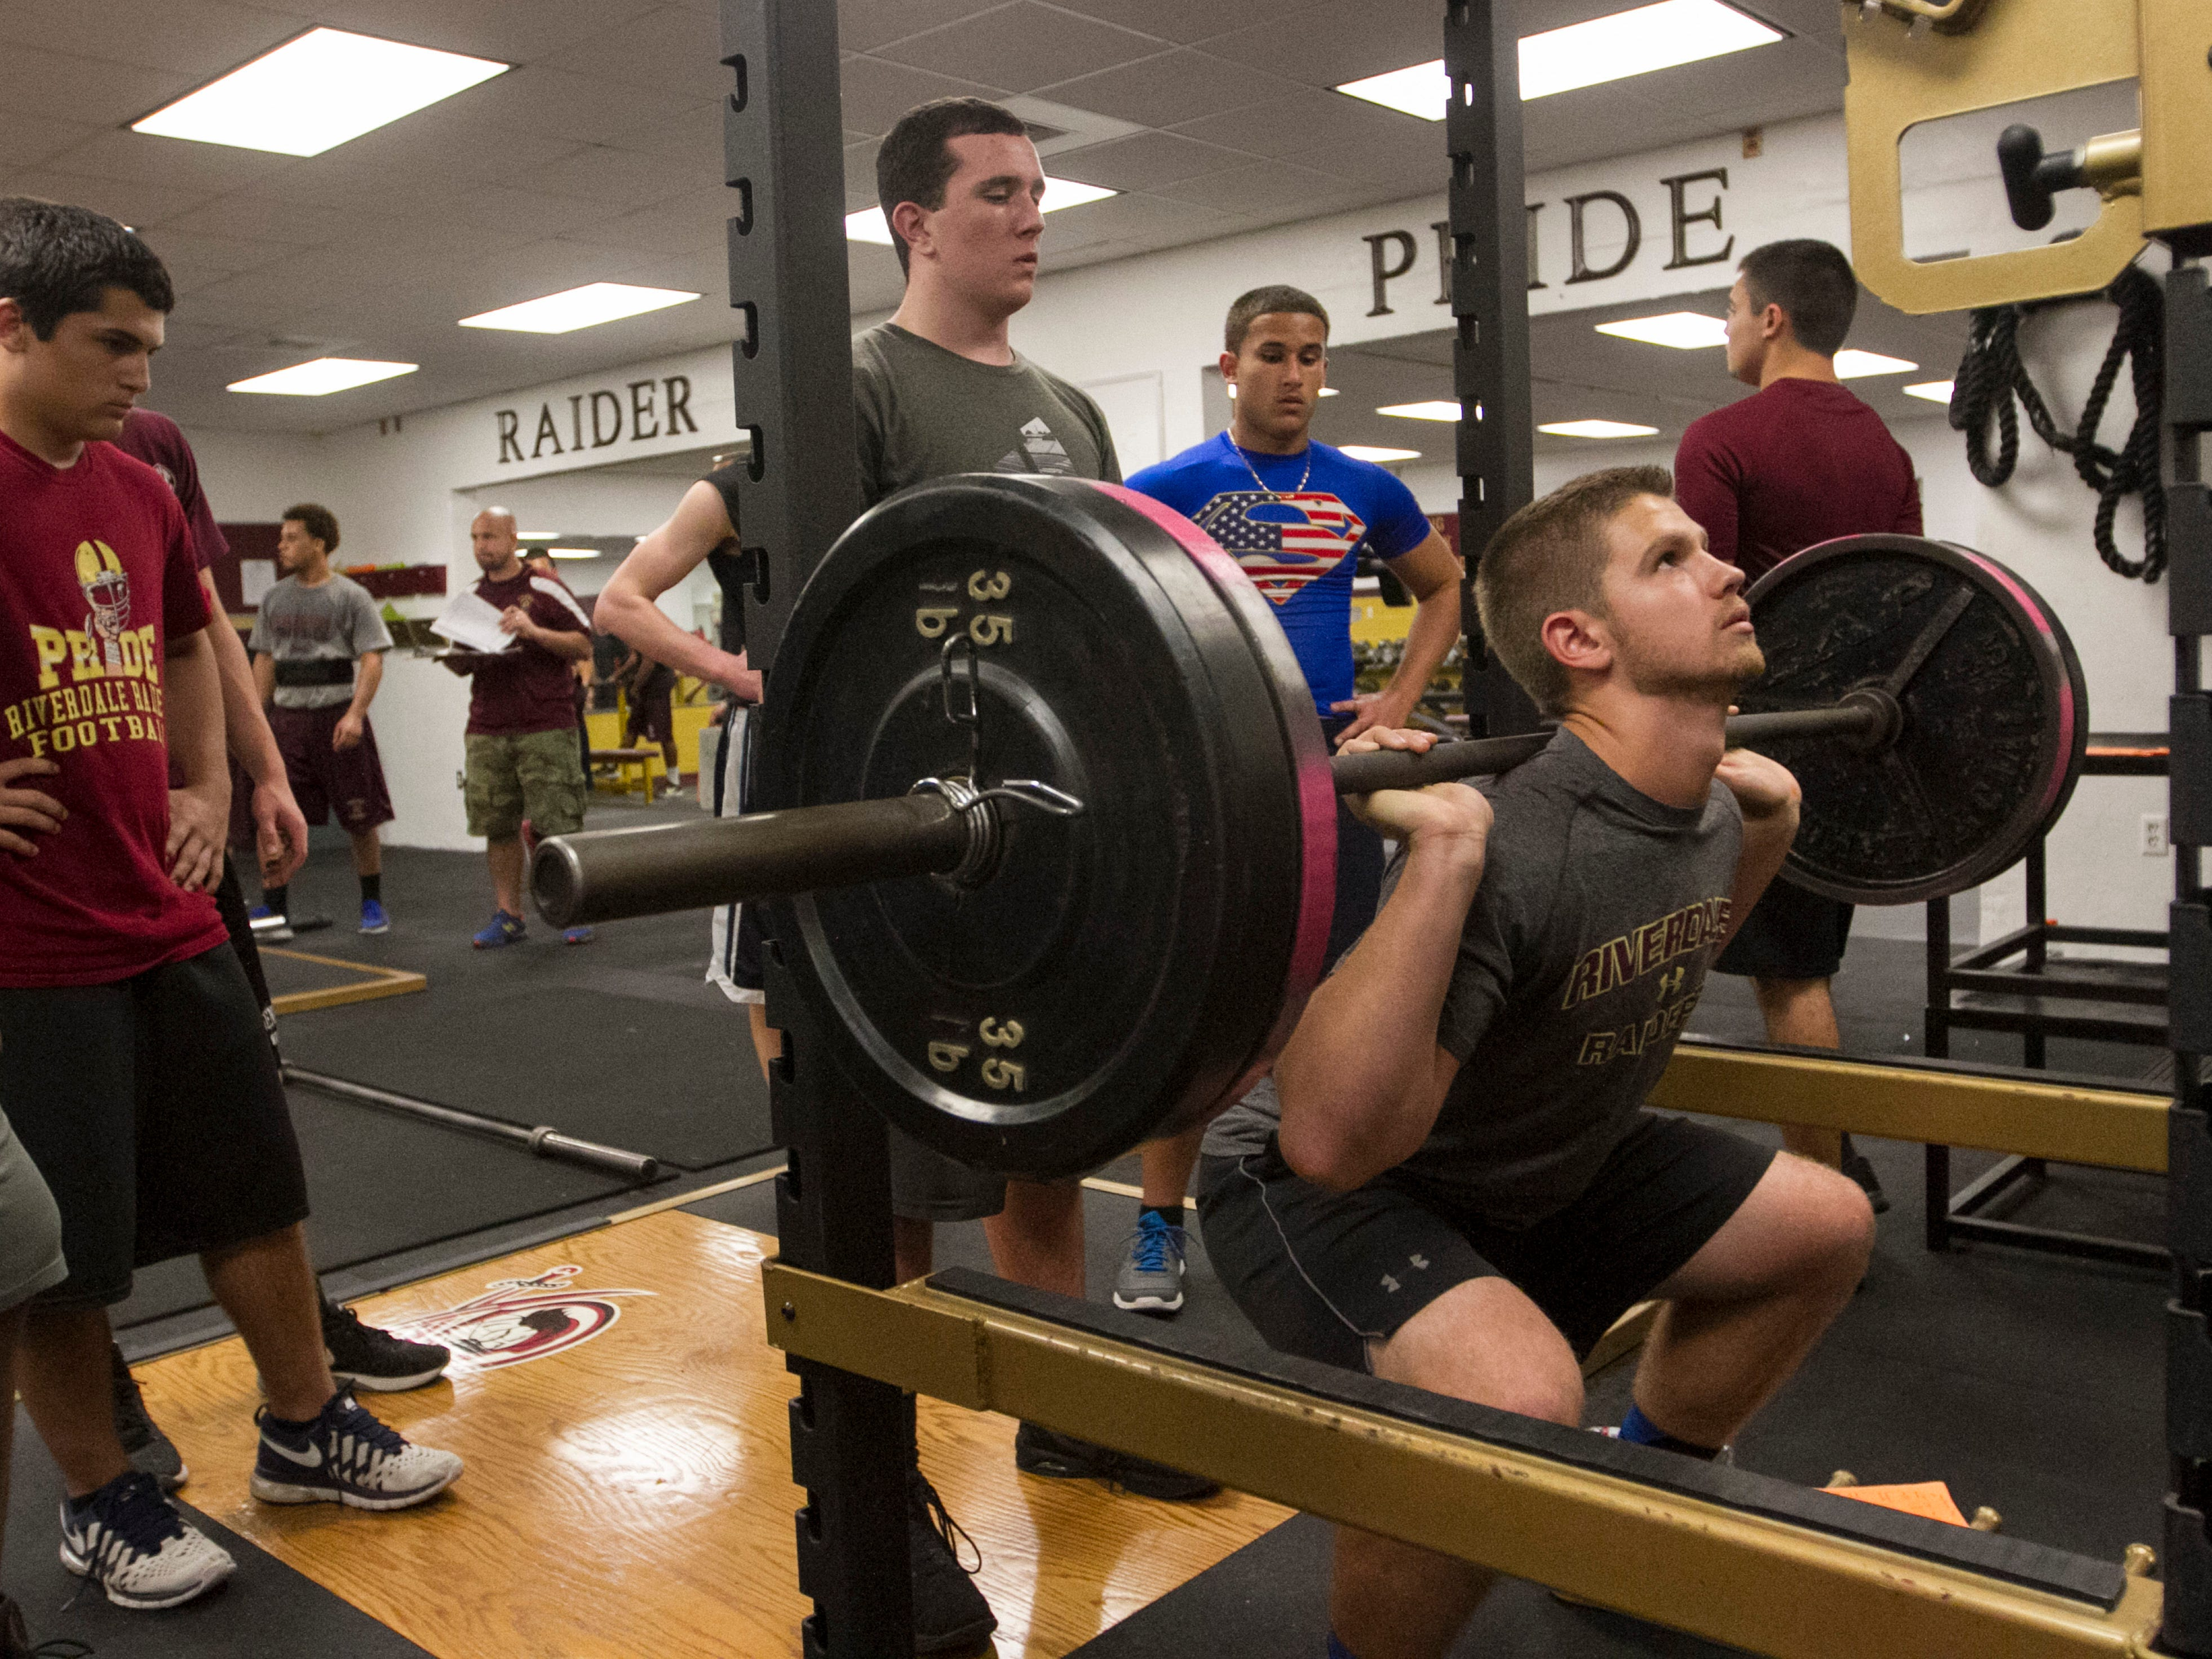 Riverdale spring football player Casey Drovdlic squats during skills testing for the team at Riverdale High School.